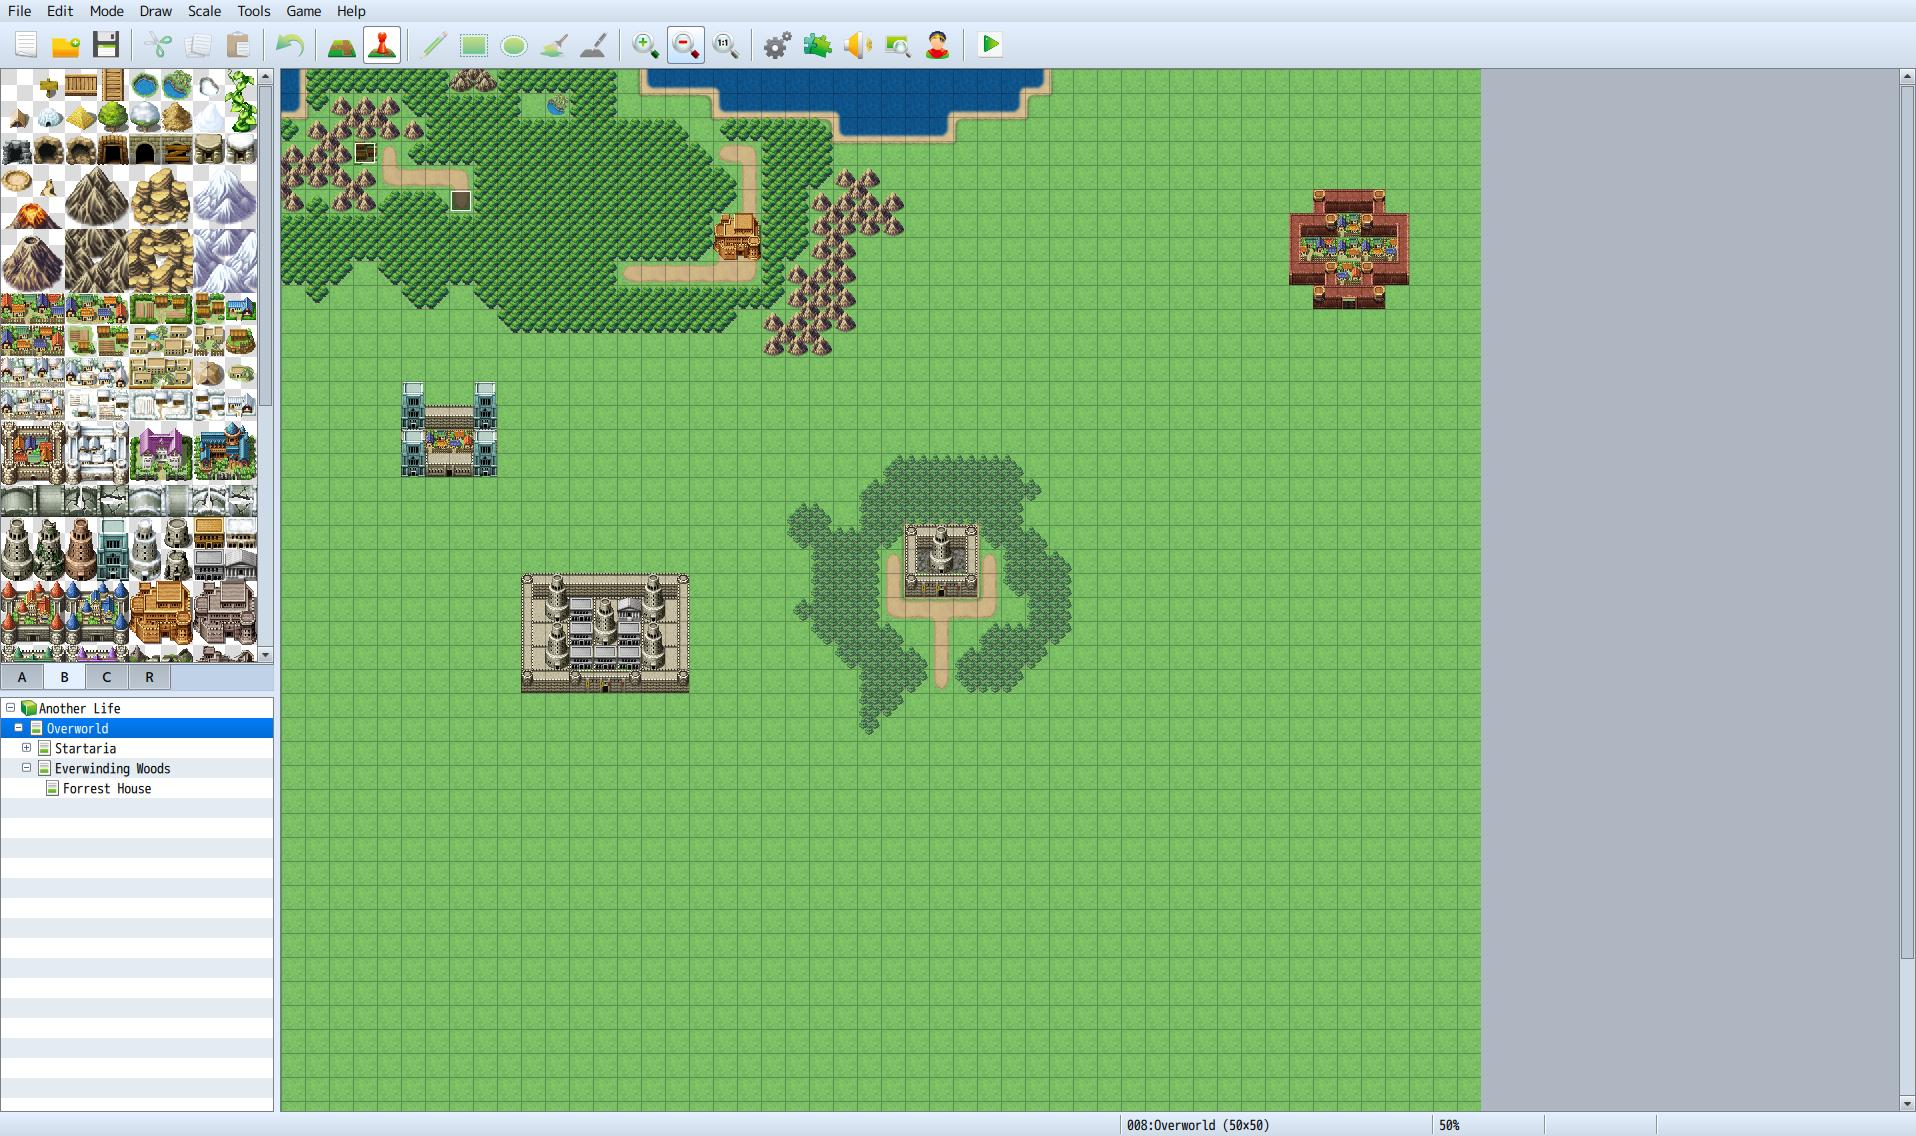 "Another thing that is kind of grinding on me is my inability to create a cool looking castle in the Overworld looking map. I've made some decent ones, but I've erased most of the ""oh jeez, what did I just create"" ones before screen capturing this."